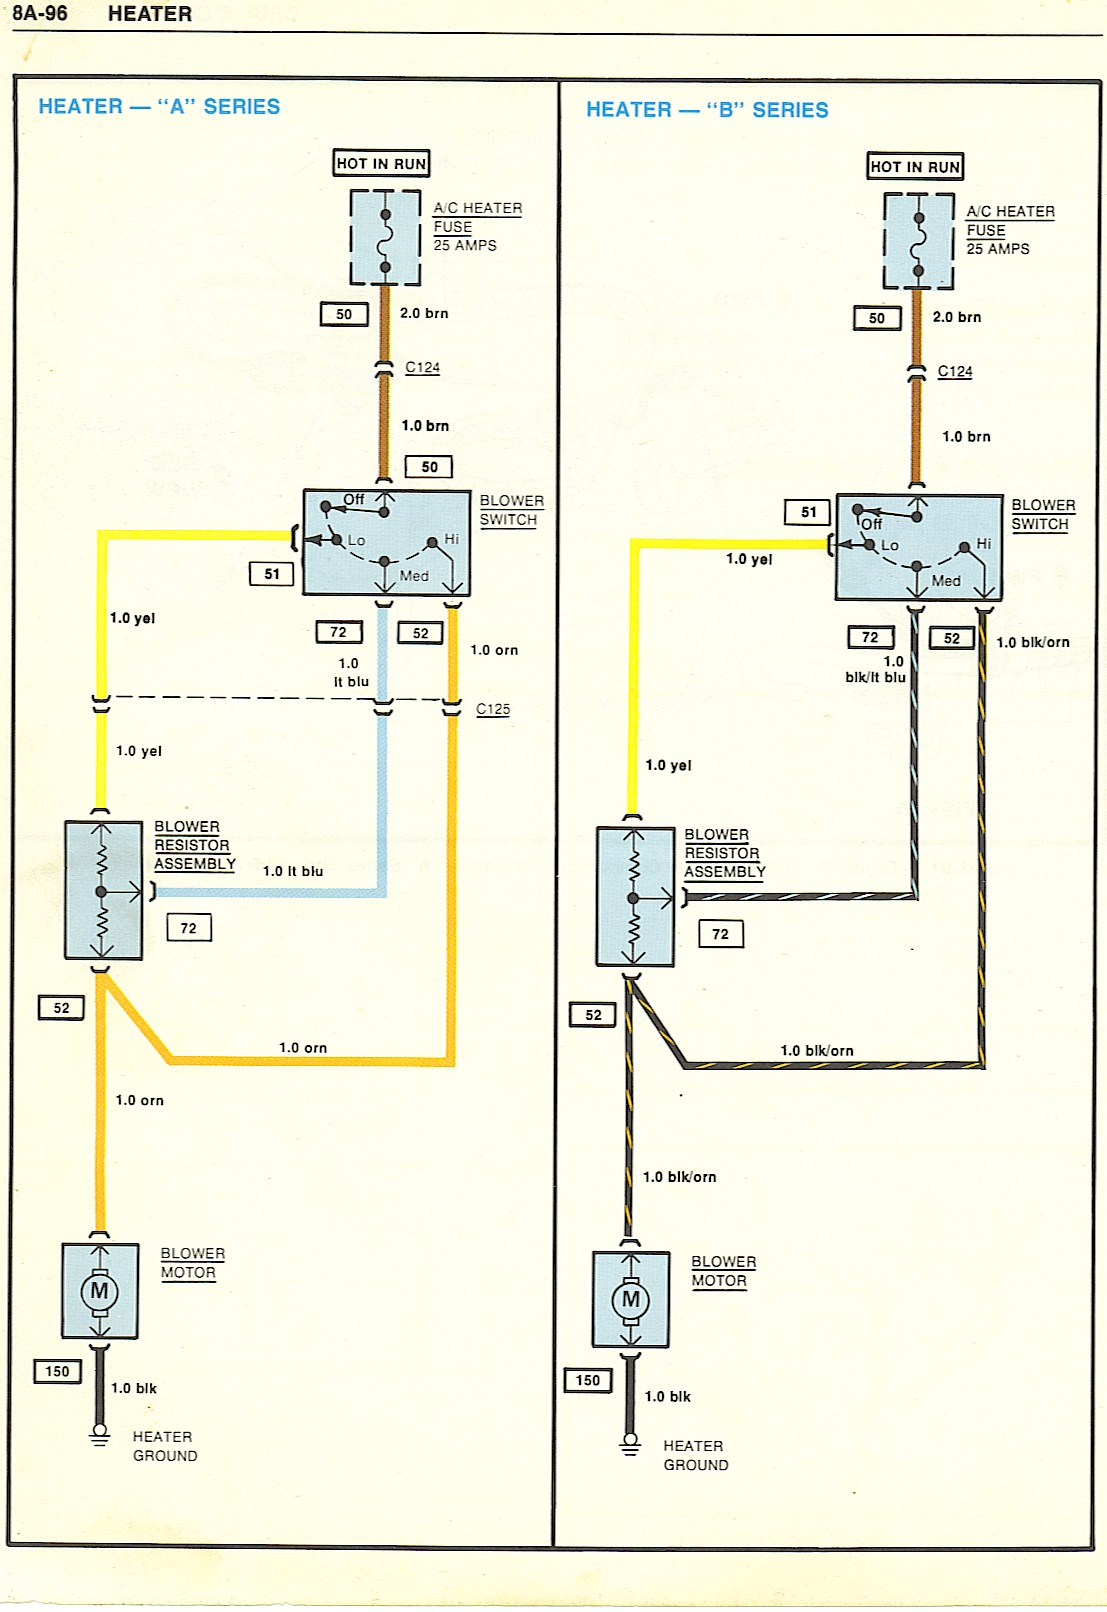 Heater wiring diagrams Ford Alternator Wiring Diagram at bayanpartner.co